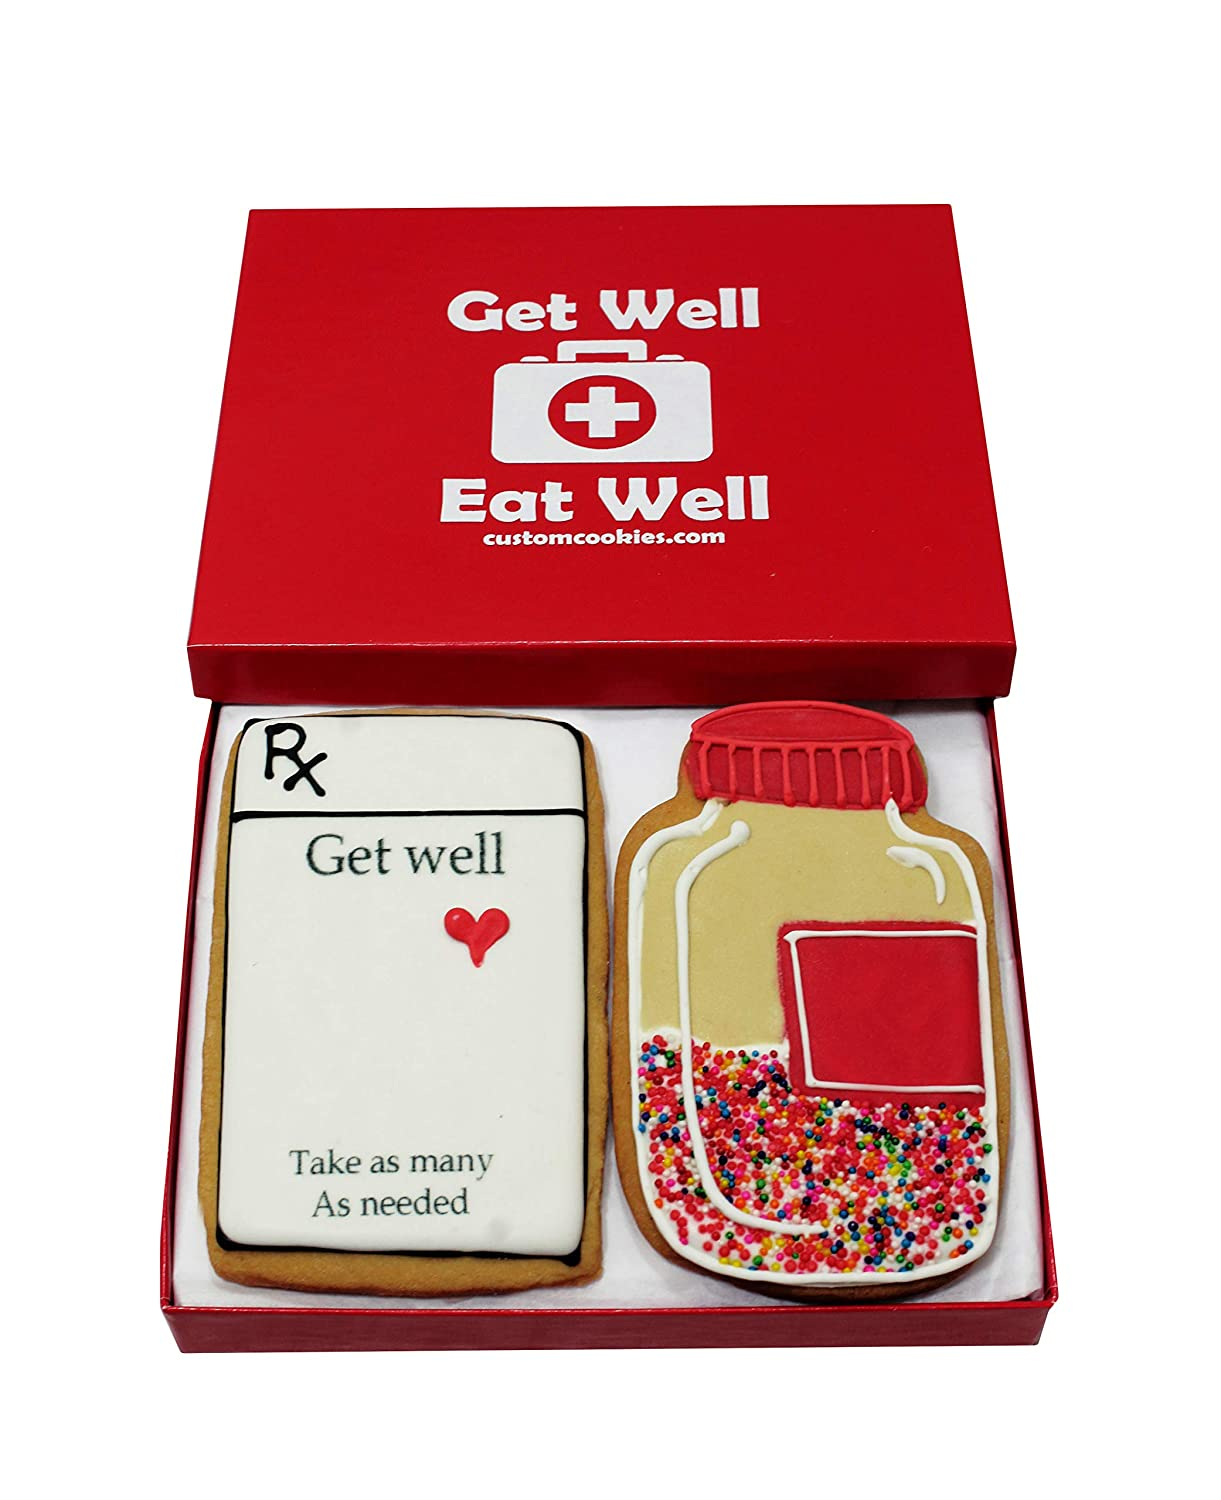 Gourmet Get Well Cookie Gift Basket   2 Large (2.5 x 4.5 Inches) Vanilla Sugar Cookies Hand-Decorated Snack Variety Pack  Kosher Bakery Care Package For Women, Men, Boys & Girls, Kids   Prime Delivery